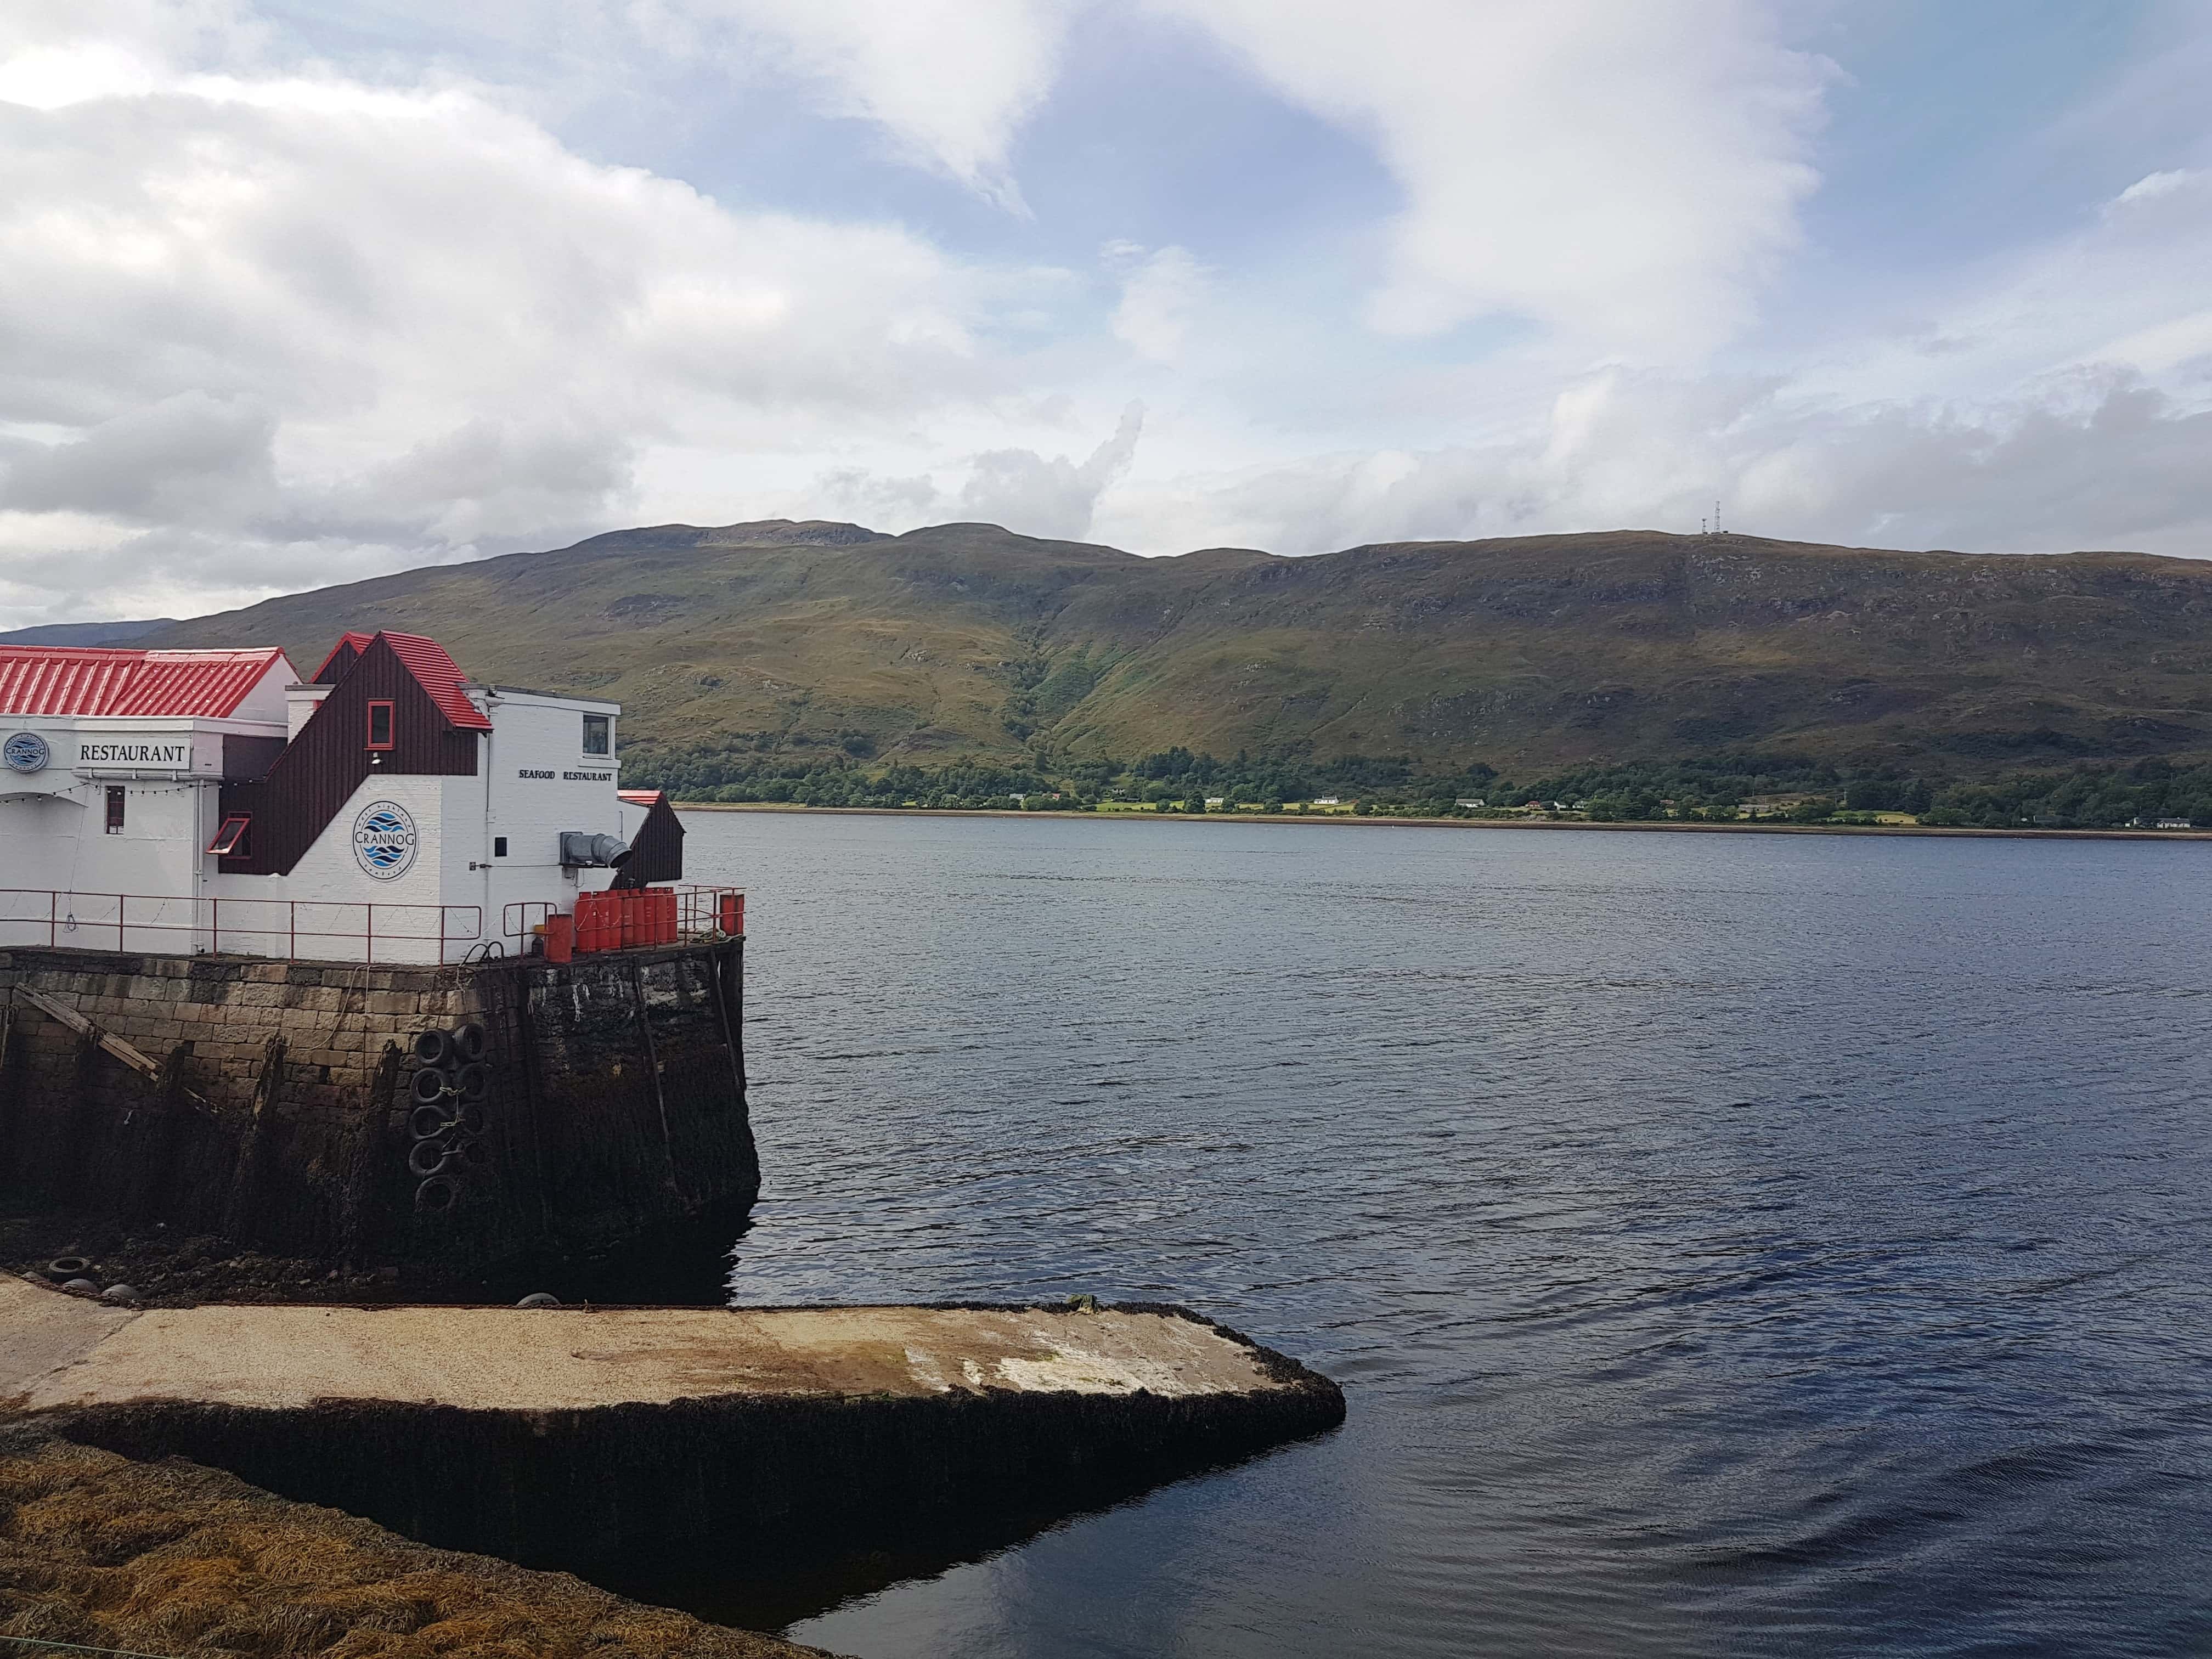 Fort William, from the corner table, #fromthecornertable